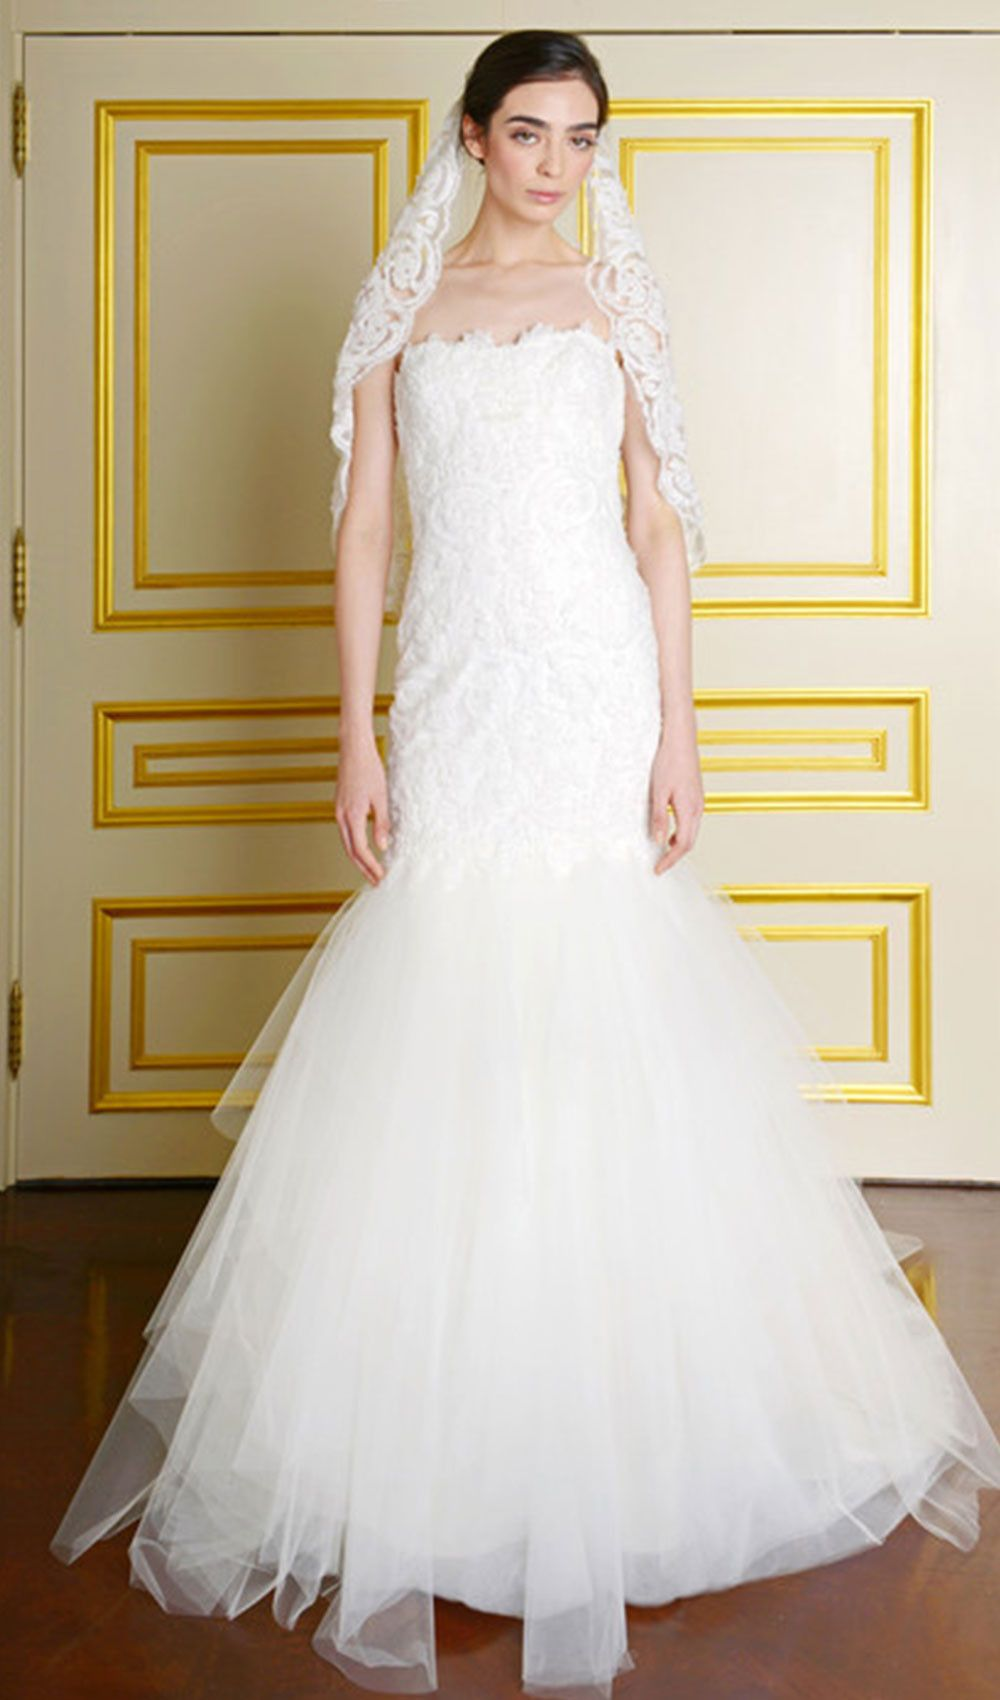 Elegant fitted wedding dresses  Try this elegant fit to flare wedding dress from Marchesa at